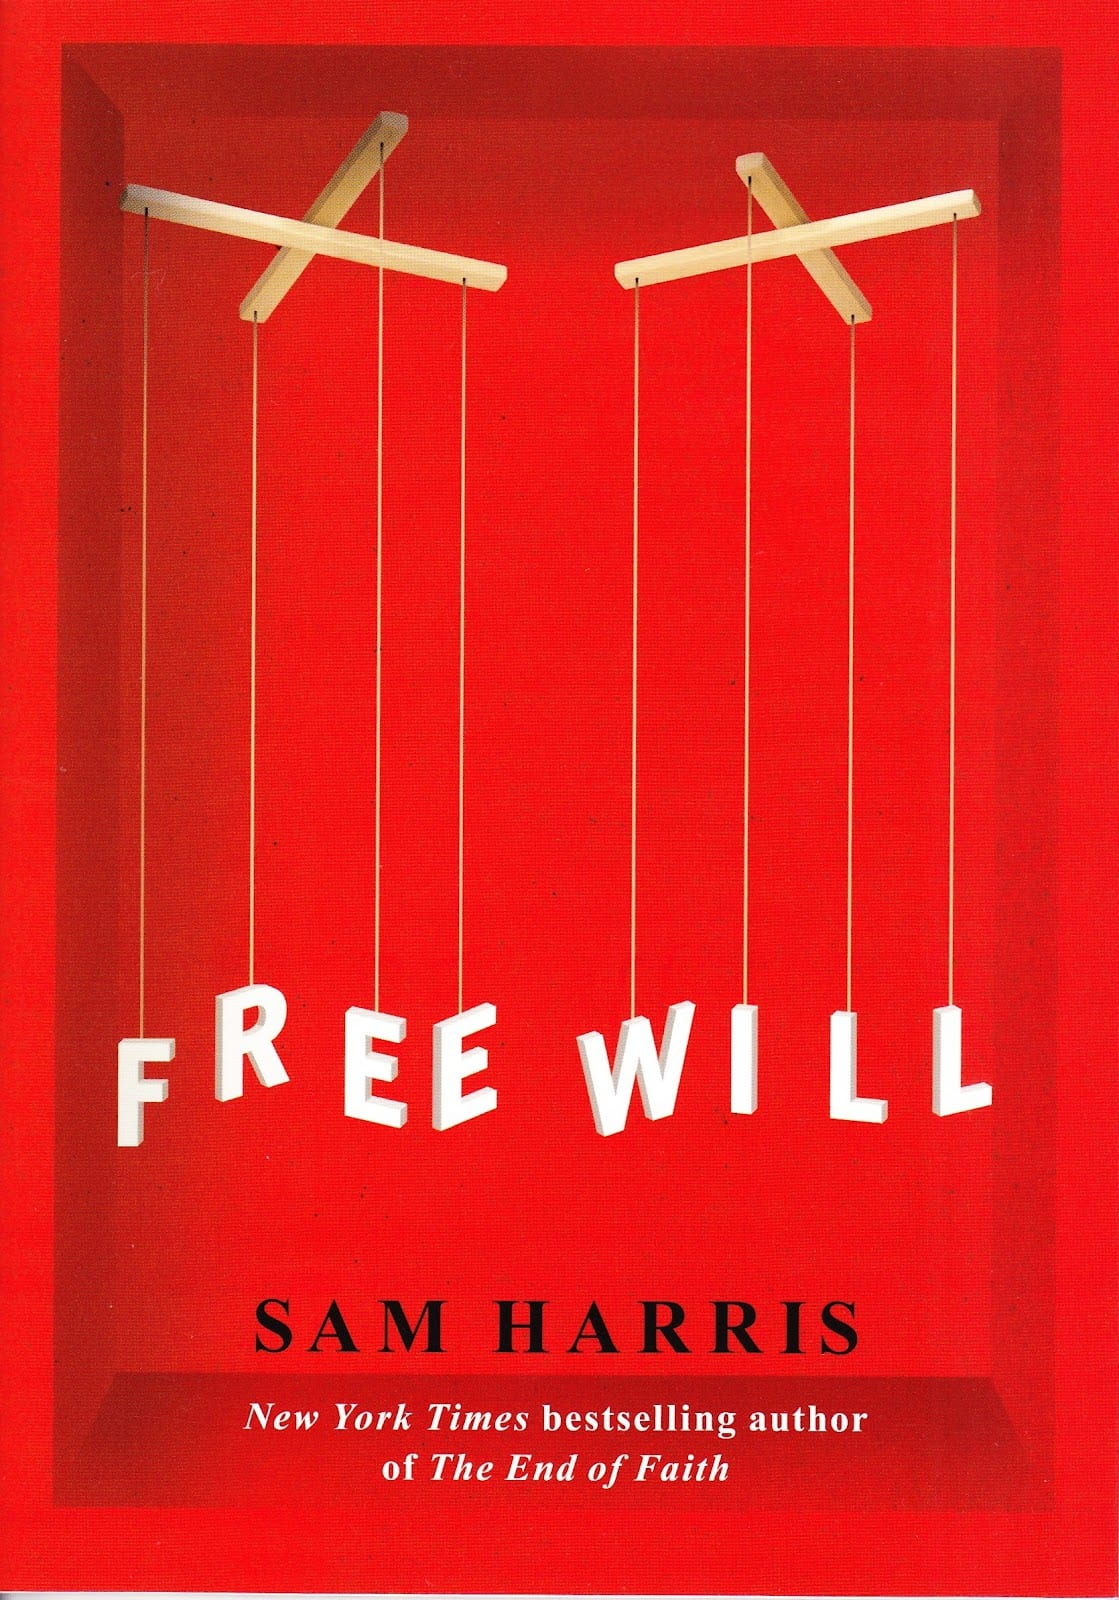 sam harris and free will Find great deals on ebay for sam harris free will shop with confidence.